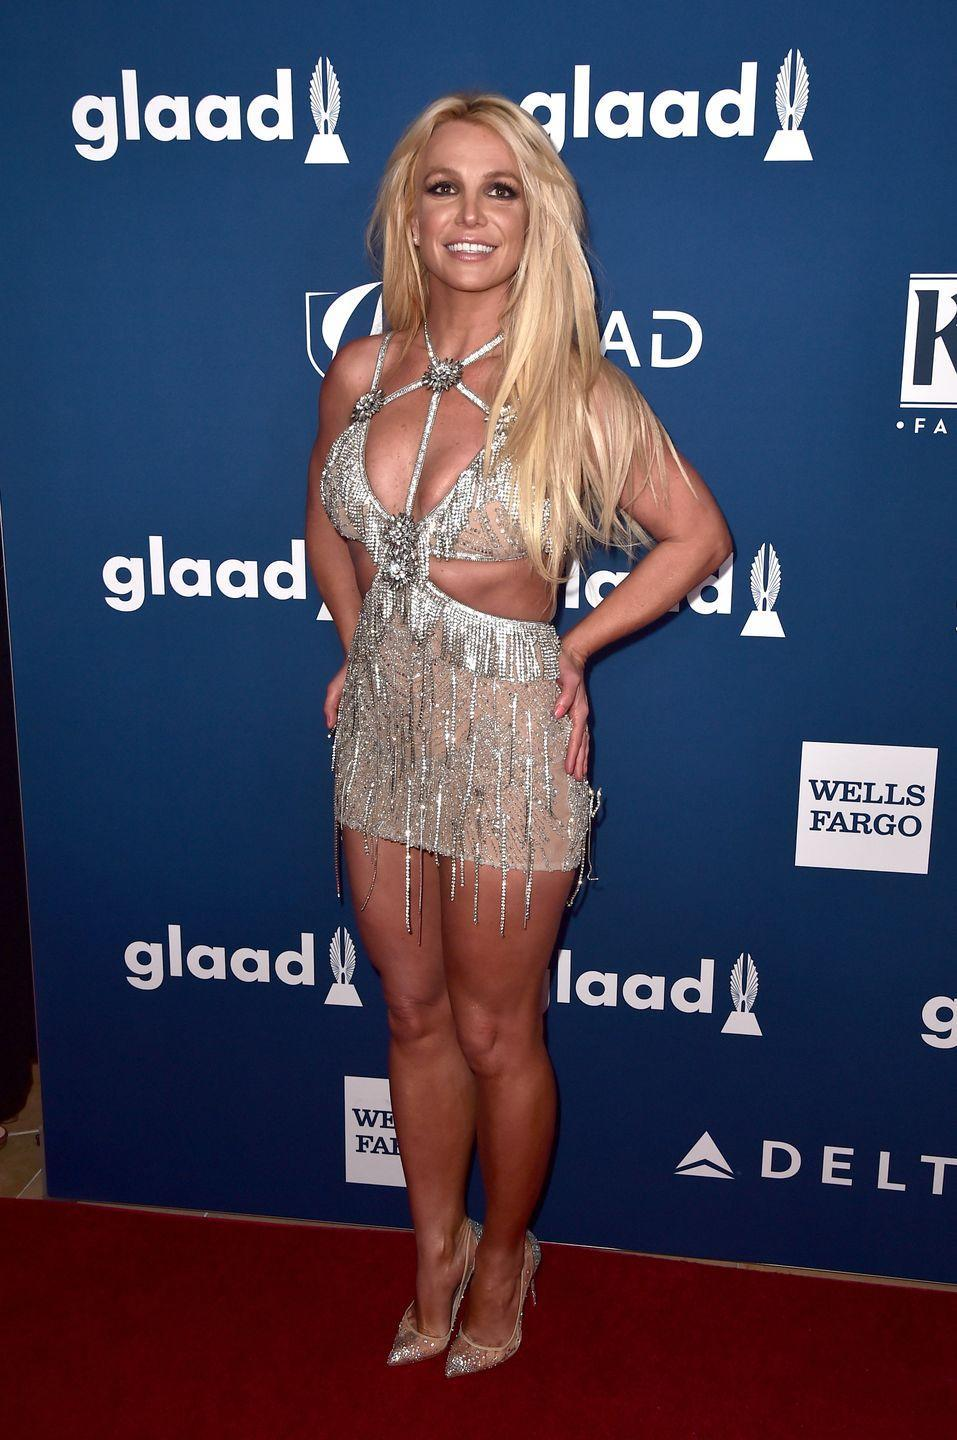 <p>Britney Spears stuns in a sparkly cut-out mini dress at the 29th Annual GLAAD Media Awards on April 12, 2018.</p>